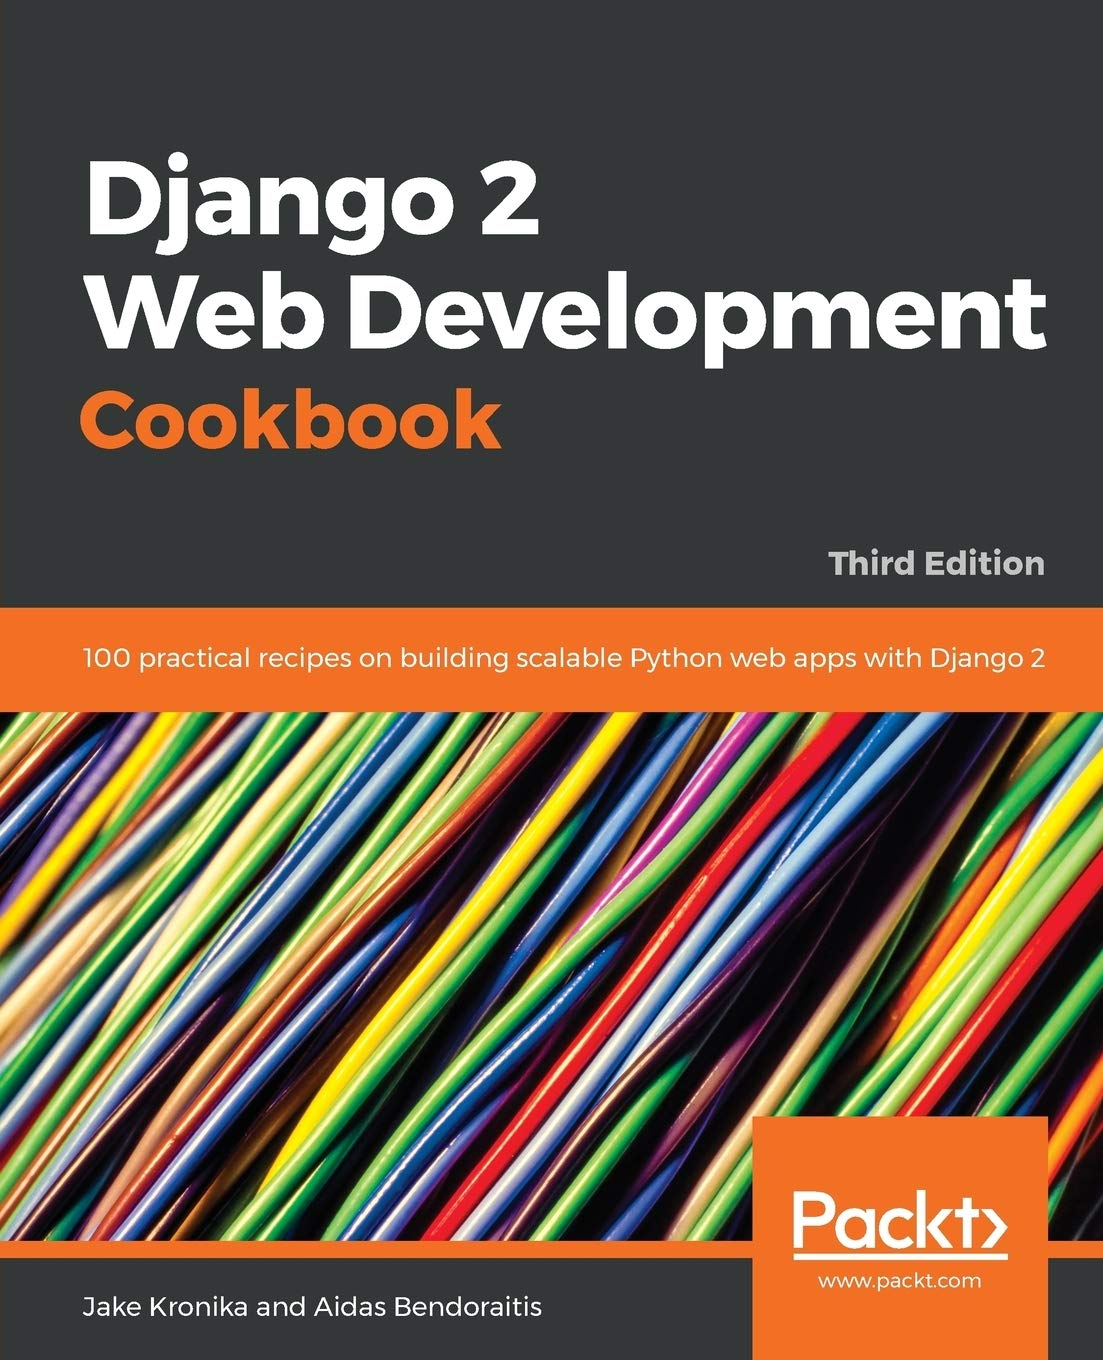 Django 2 Web Development Cookbook - Third Edition